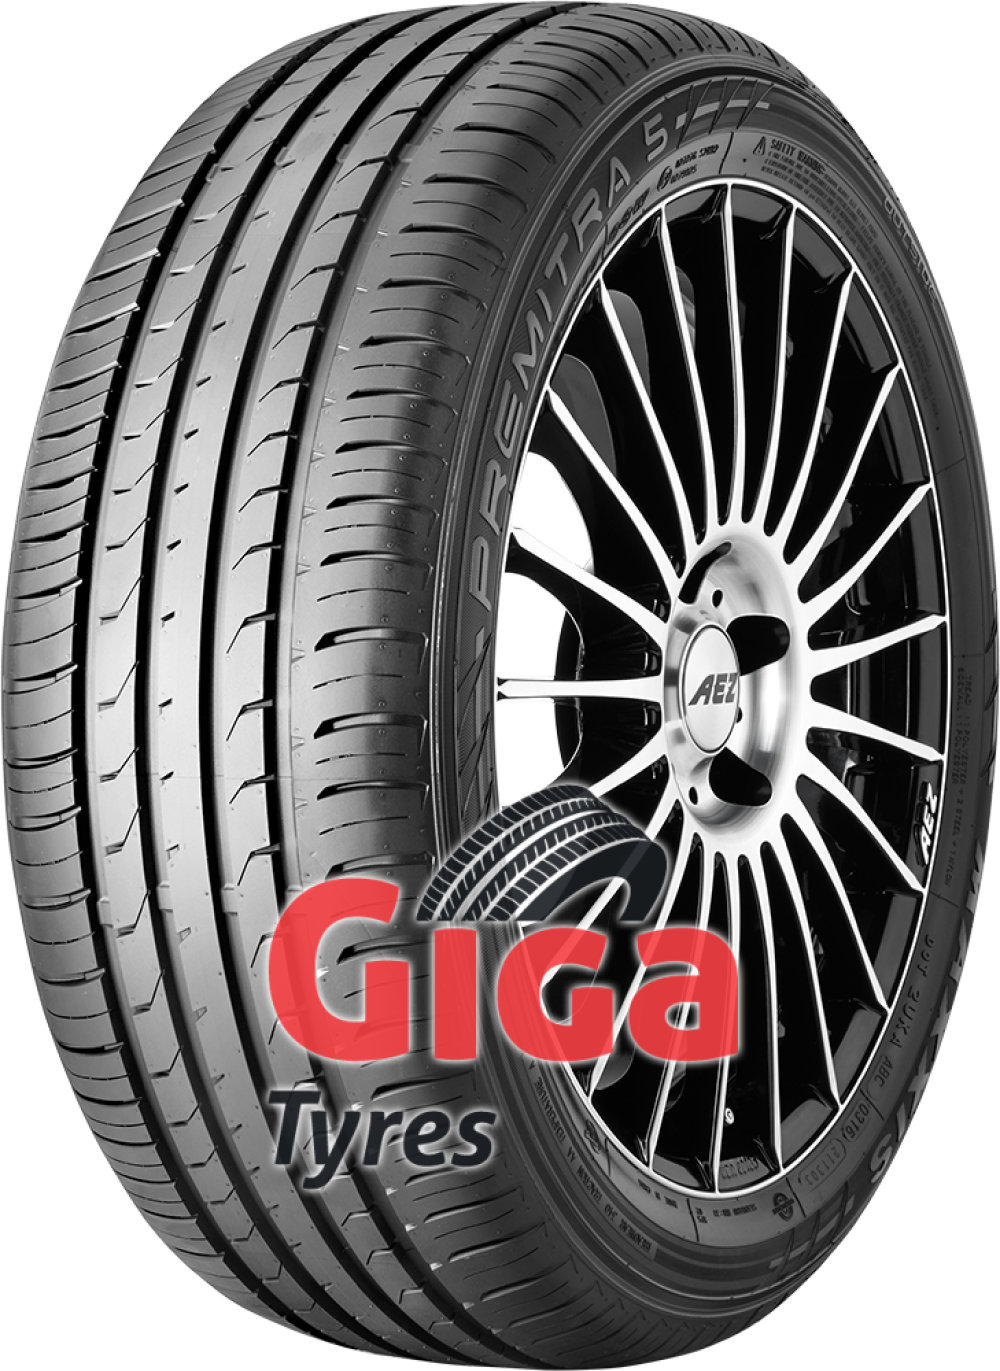 Maxxis Premitra 5 ( 195/55 R16 87V with rim protection ridge (FSL) )